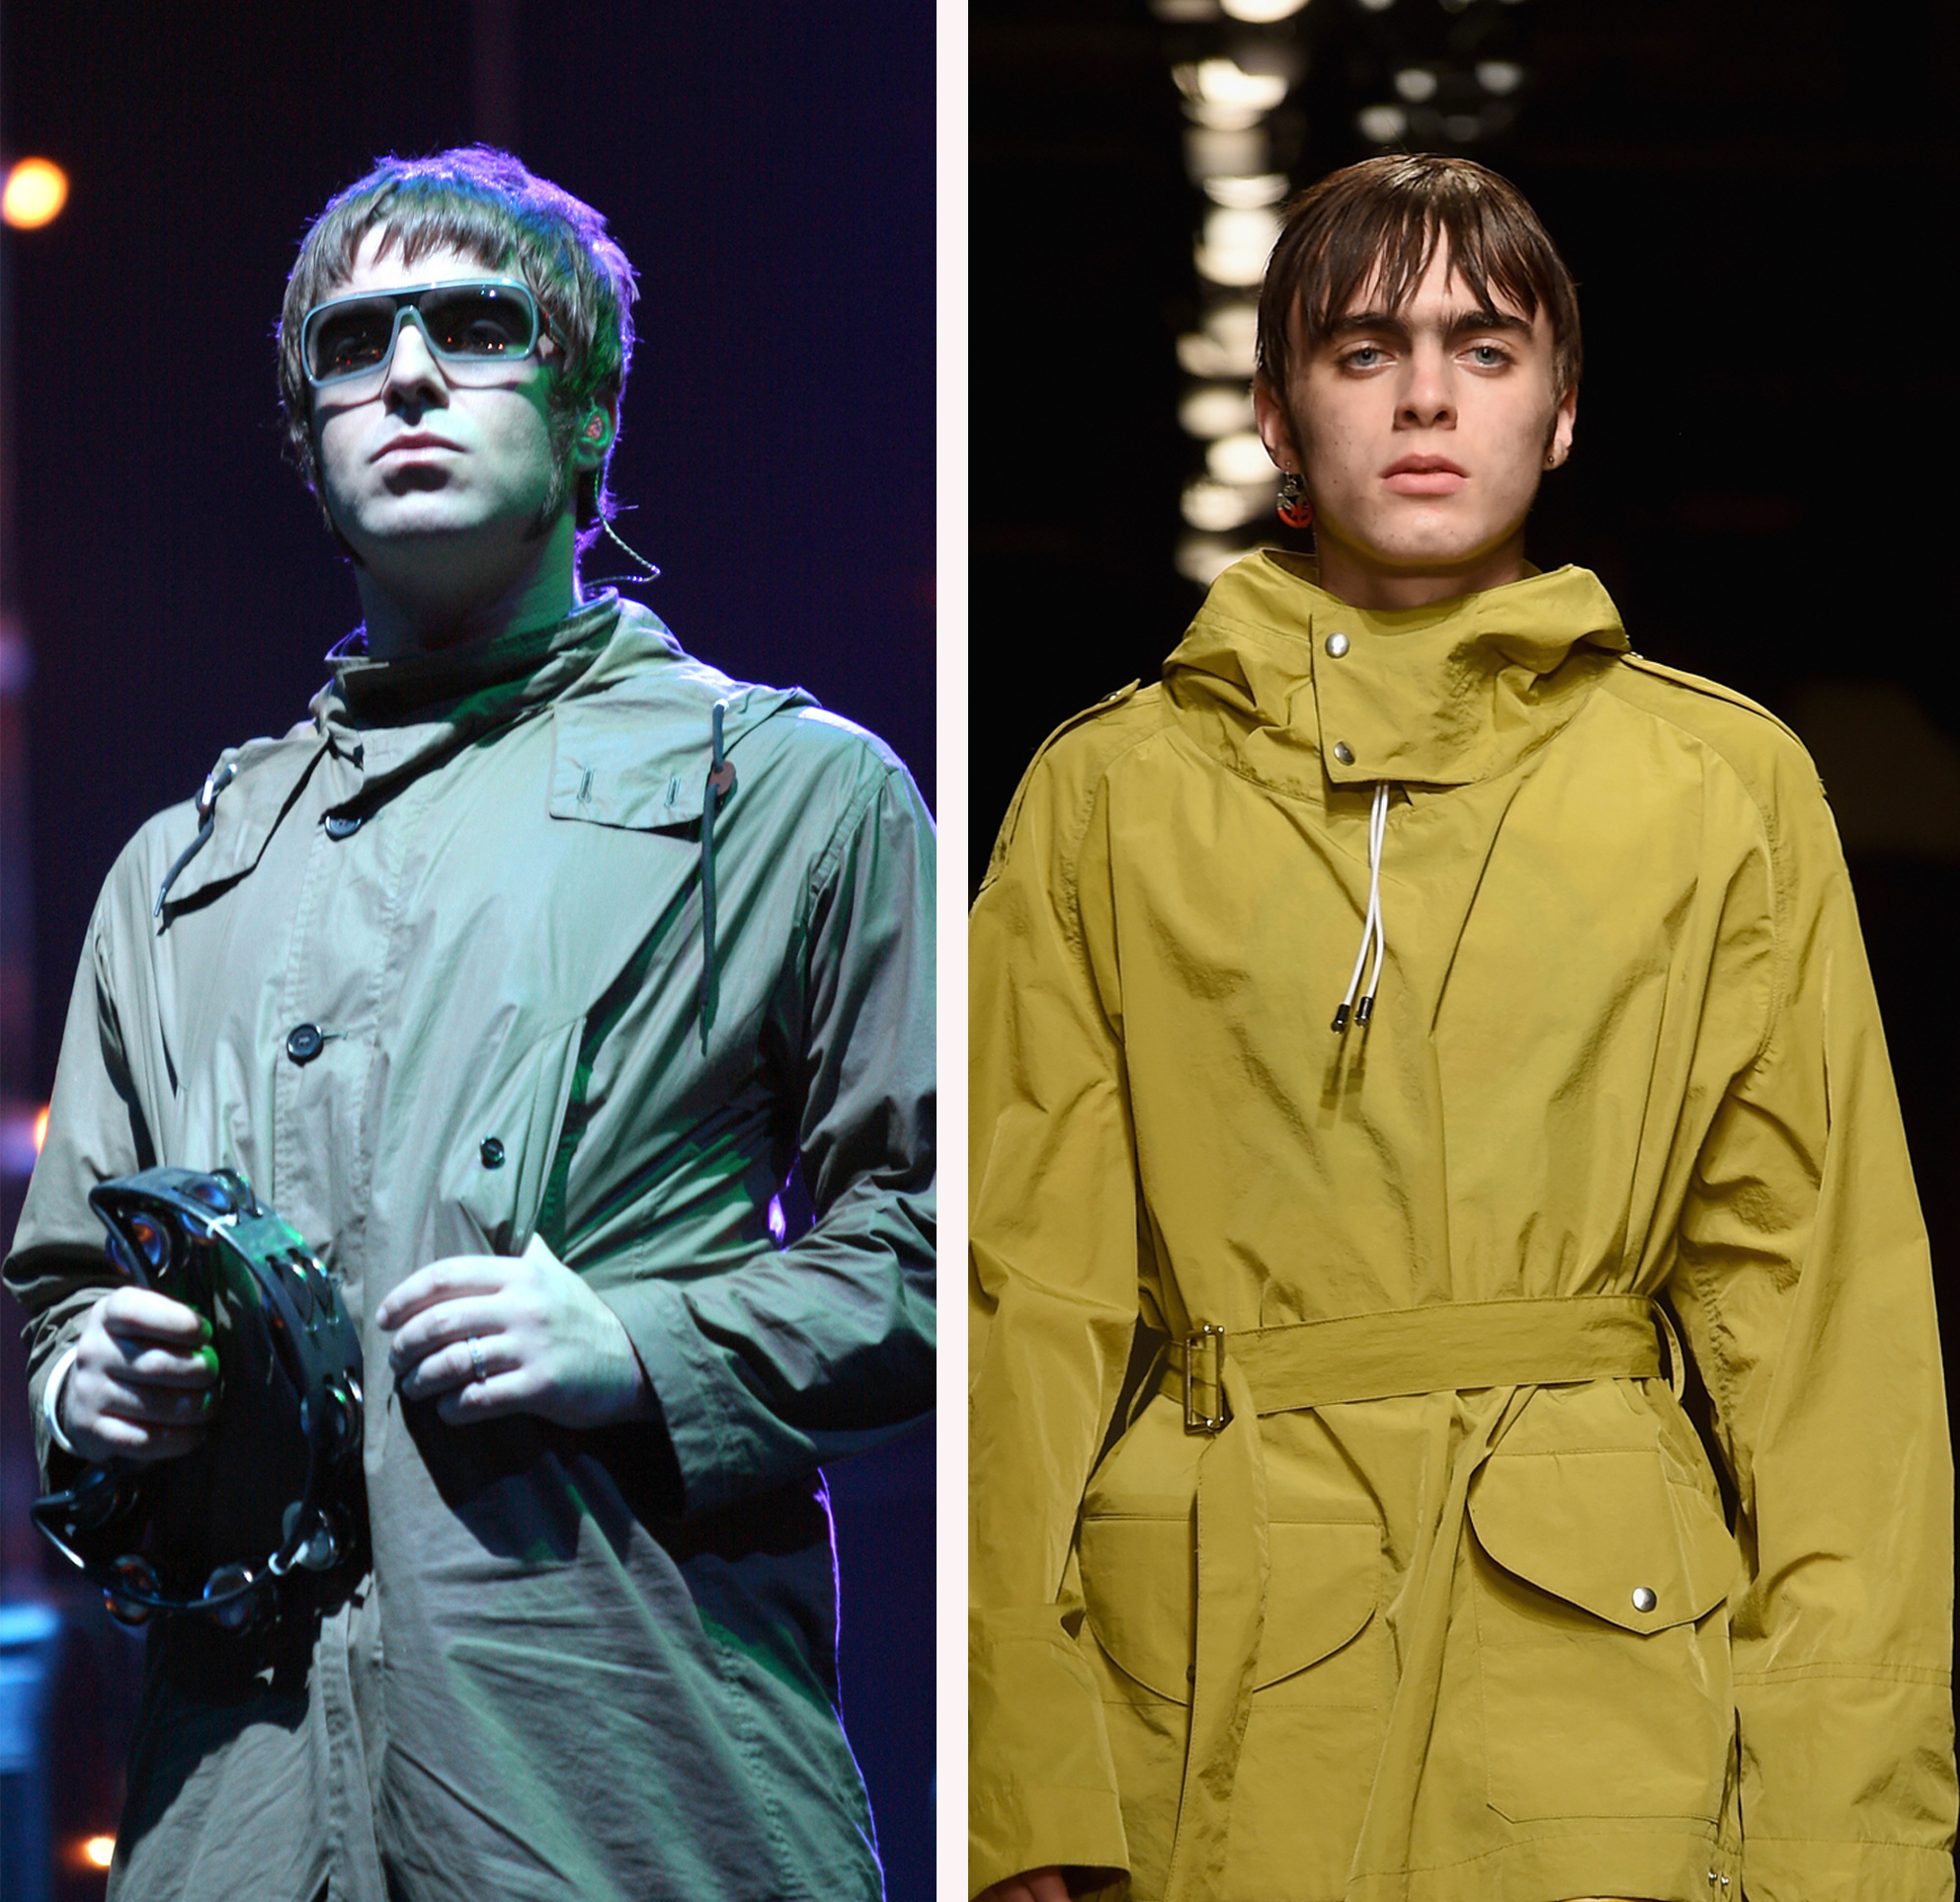 Liam Gallagher and son Lennon split screen image G